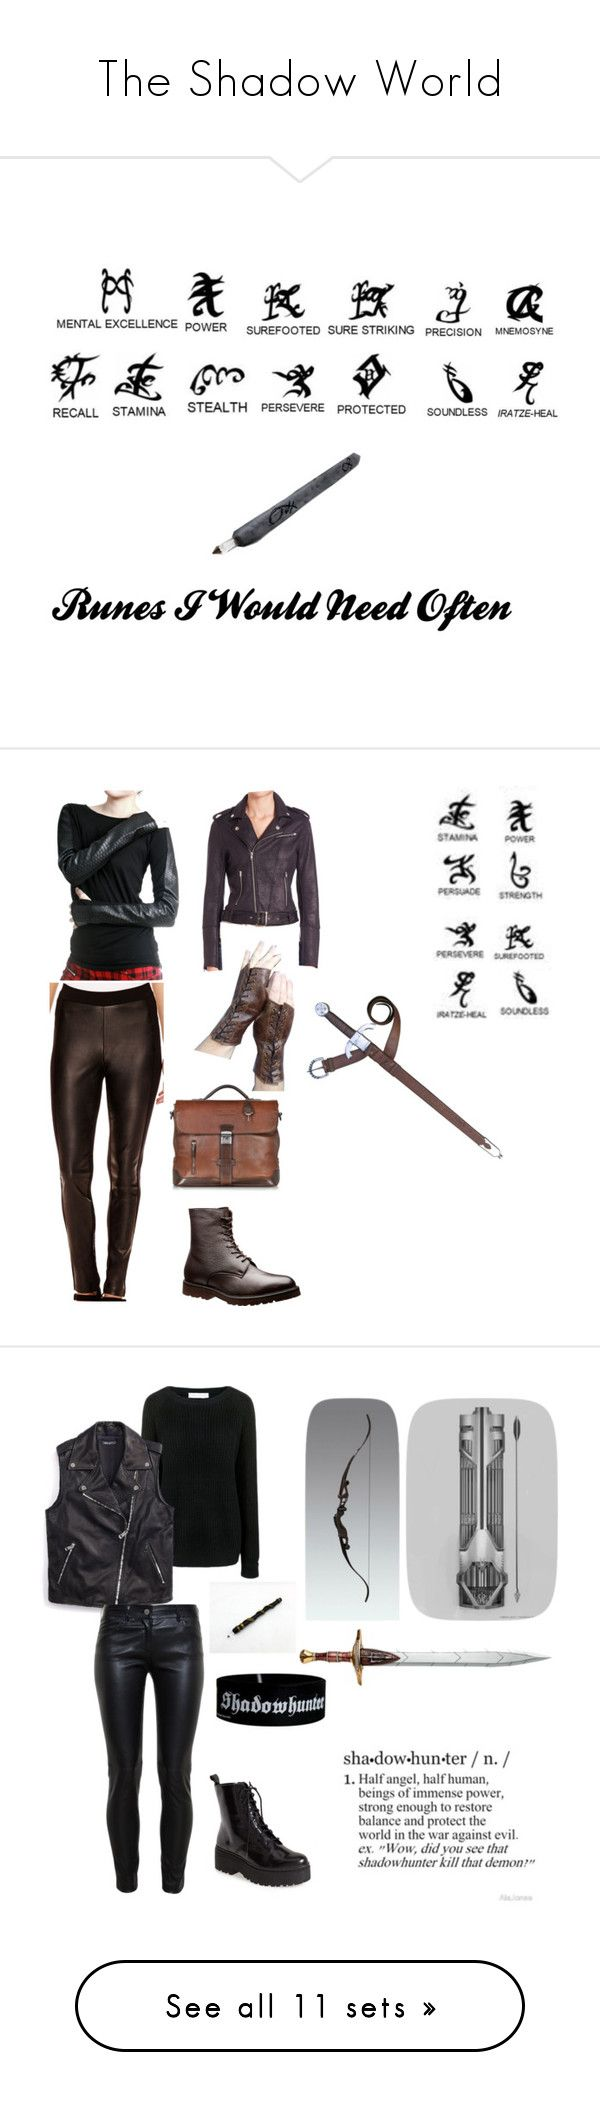 """The Shadow World"" by wolfschaffer ❤ liked on Polyvore featuring art, ShadowHunter, runes, Steele, Nicole By Nicole Miller, The Kooples, The Bridge, Leather, cassandraclare and MortalInstraments"